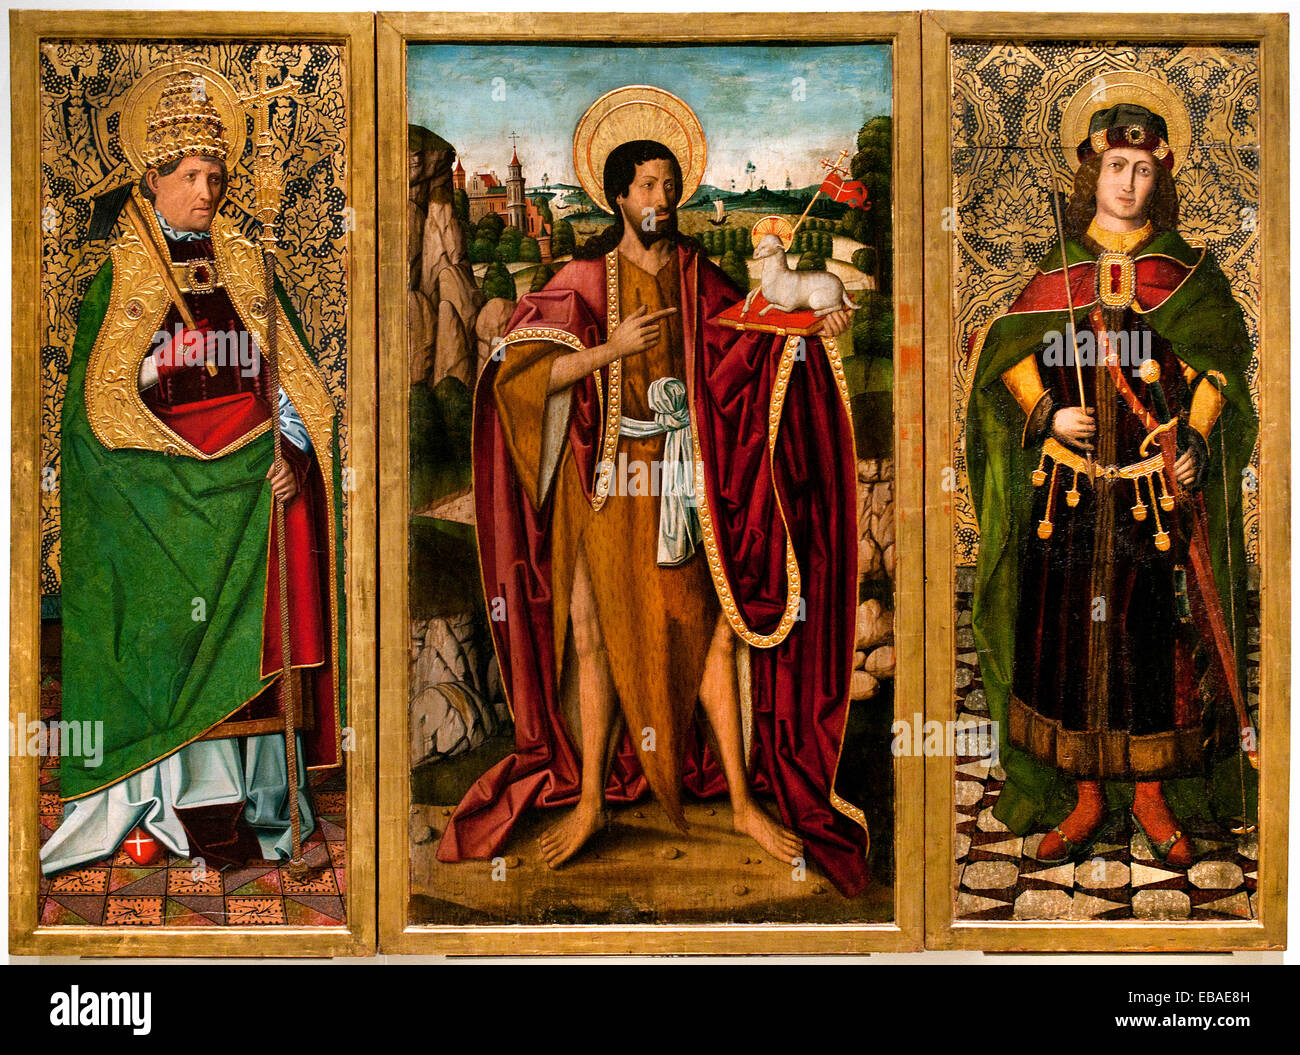 Saint John the Baptist, Saint Fabian and Saint Sebastian 1494 Miguel Ximenez  1462 - 1505  Spain Spanish Medieval Stock Photo